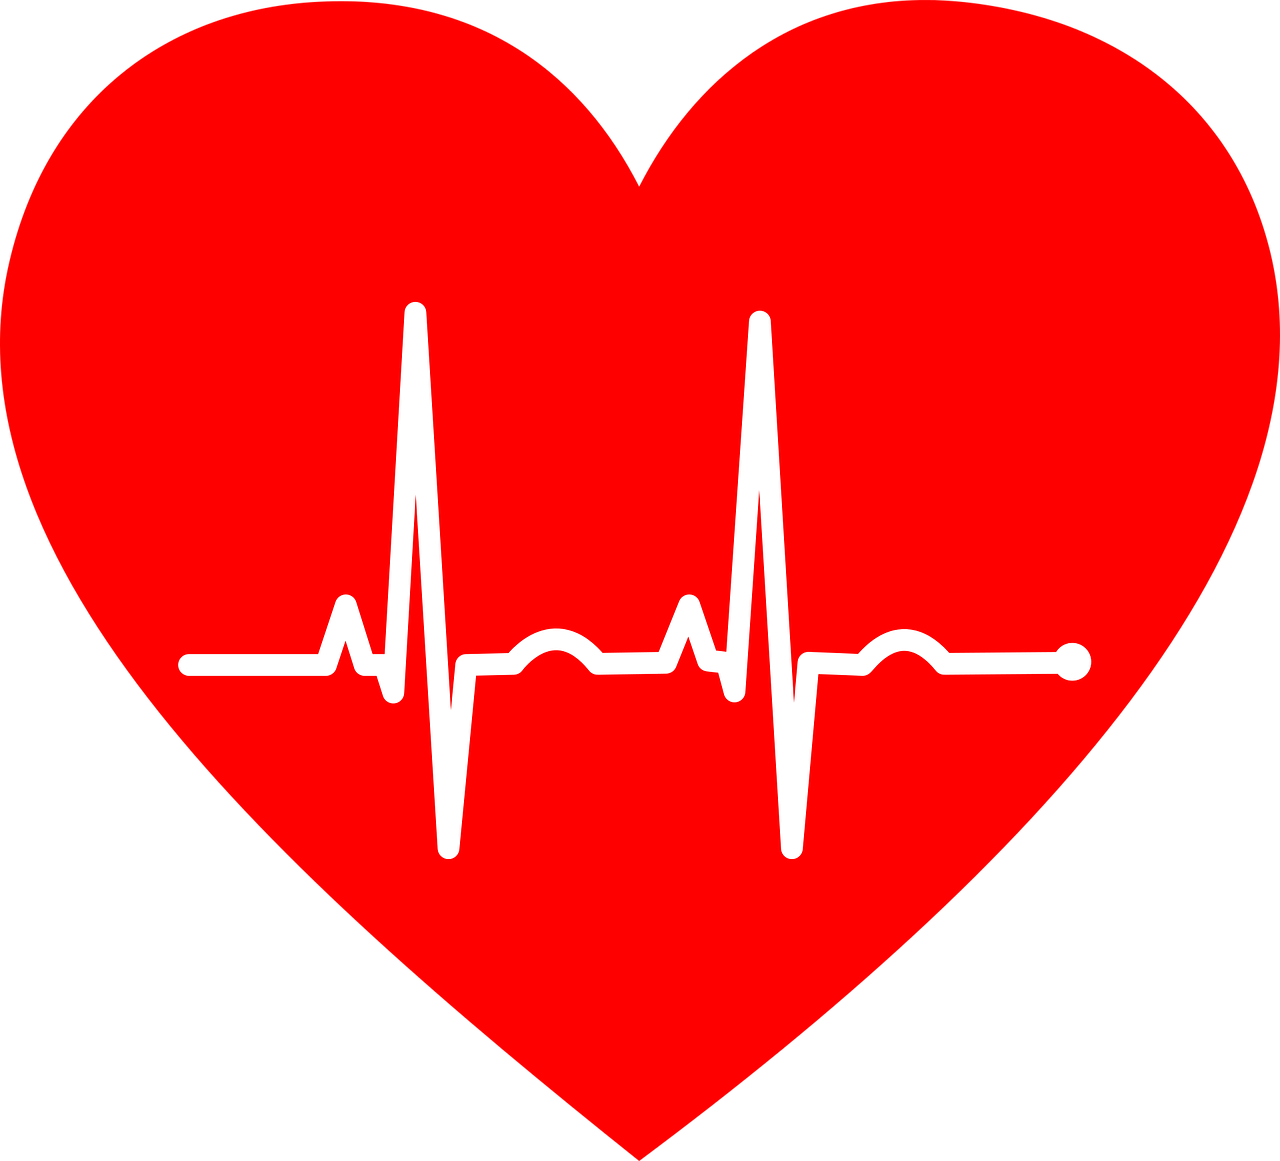 Can your beat the. Heartbeat clipart heart rate